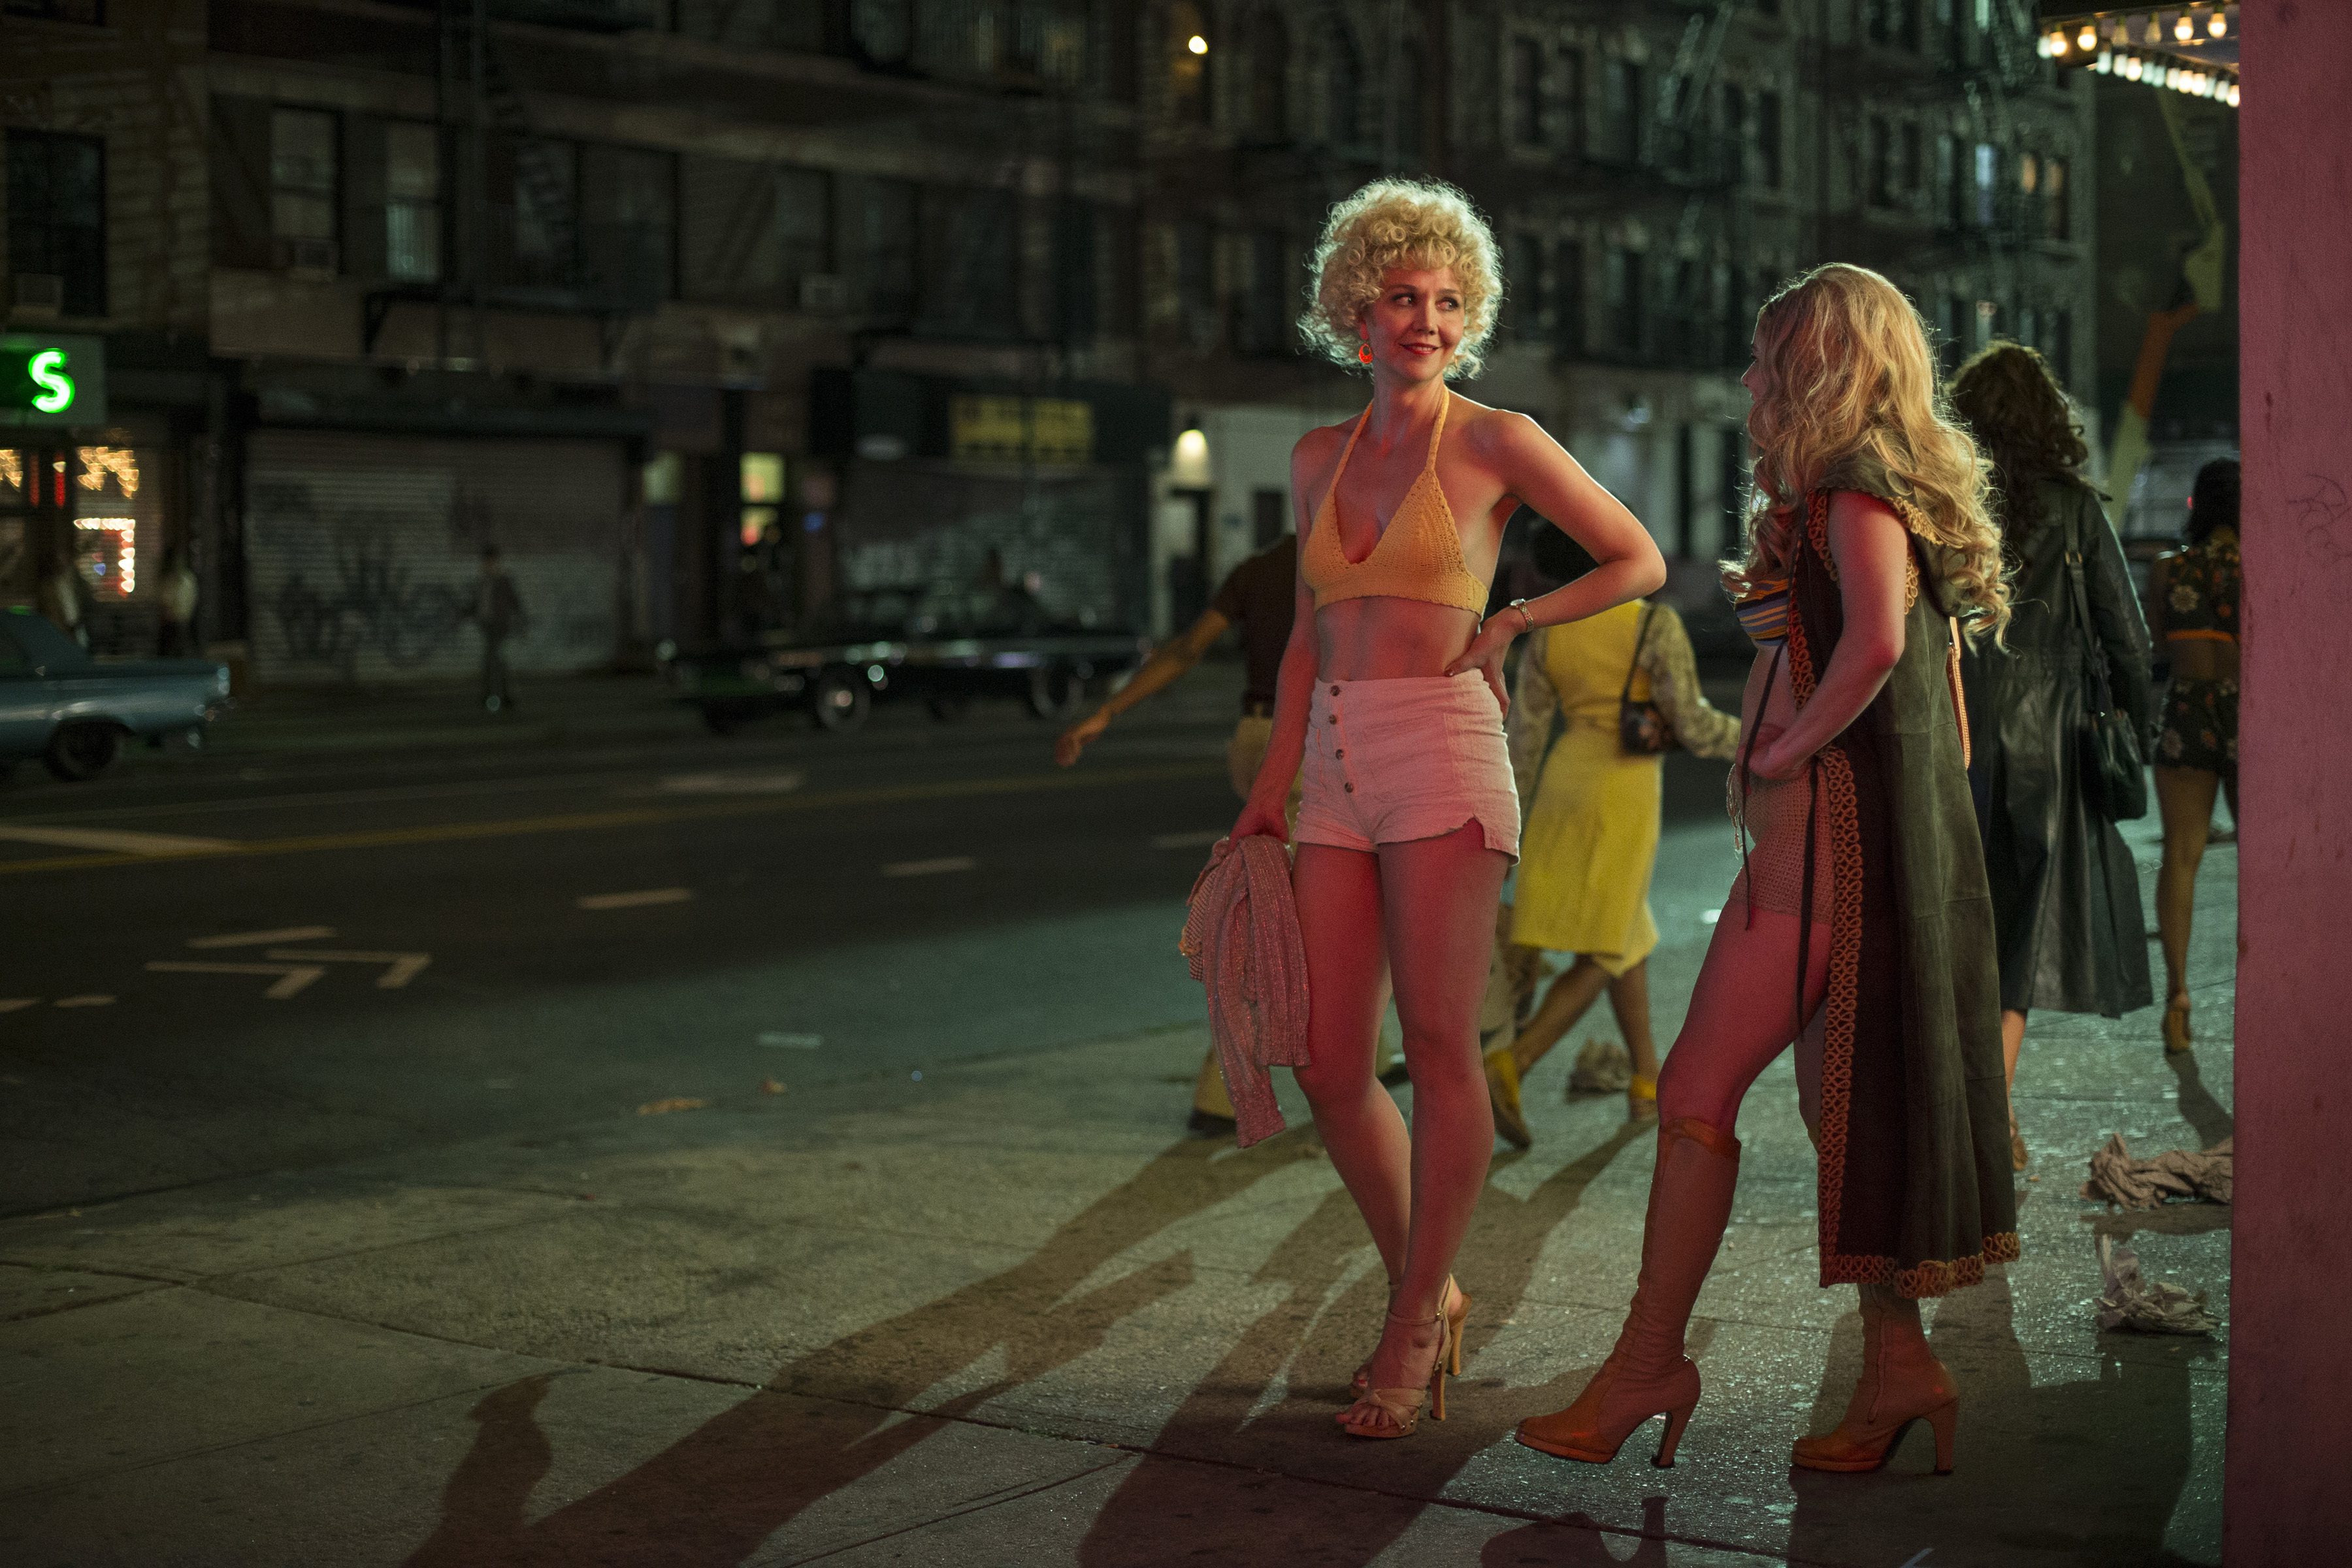 Mapping the NYC filming locations for HBO's '70s porn drama 'The Deuce'